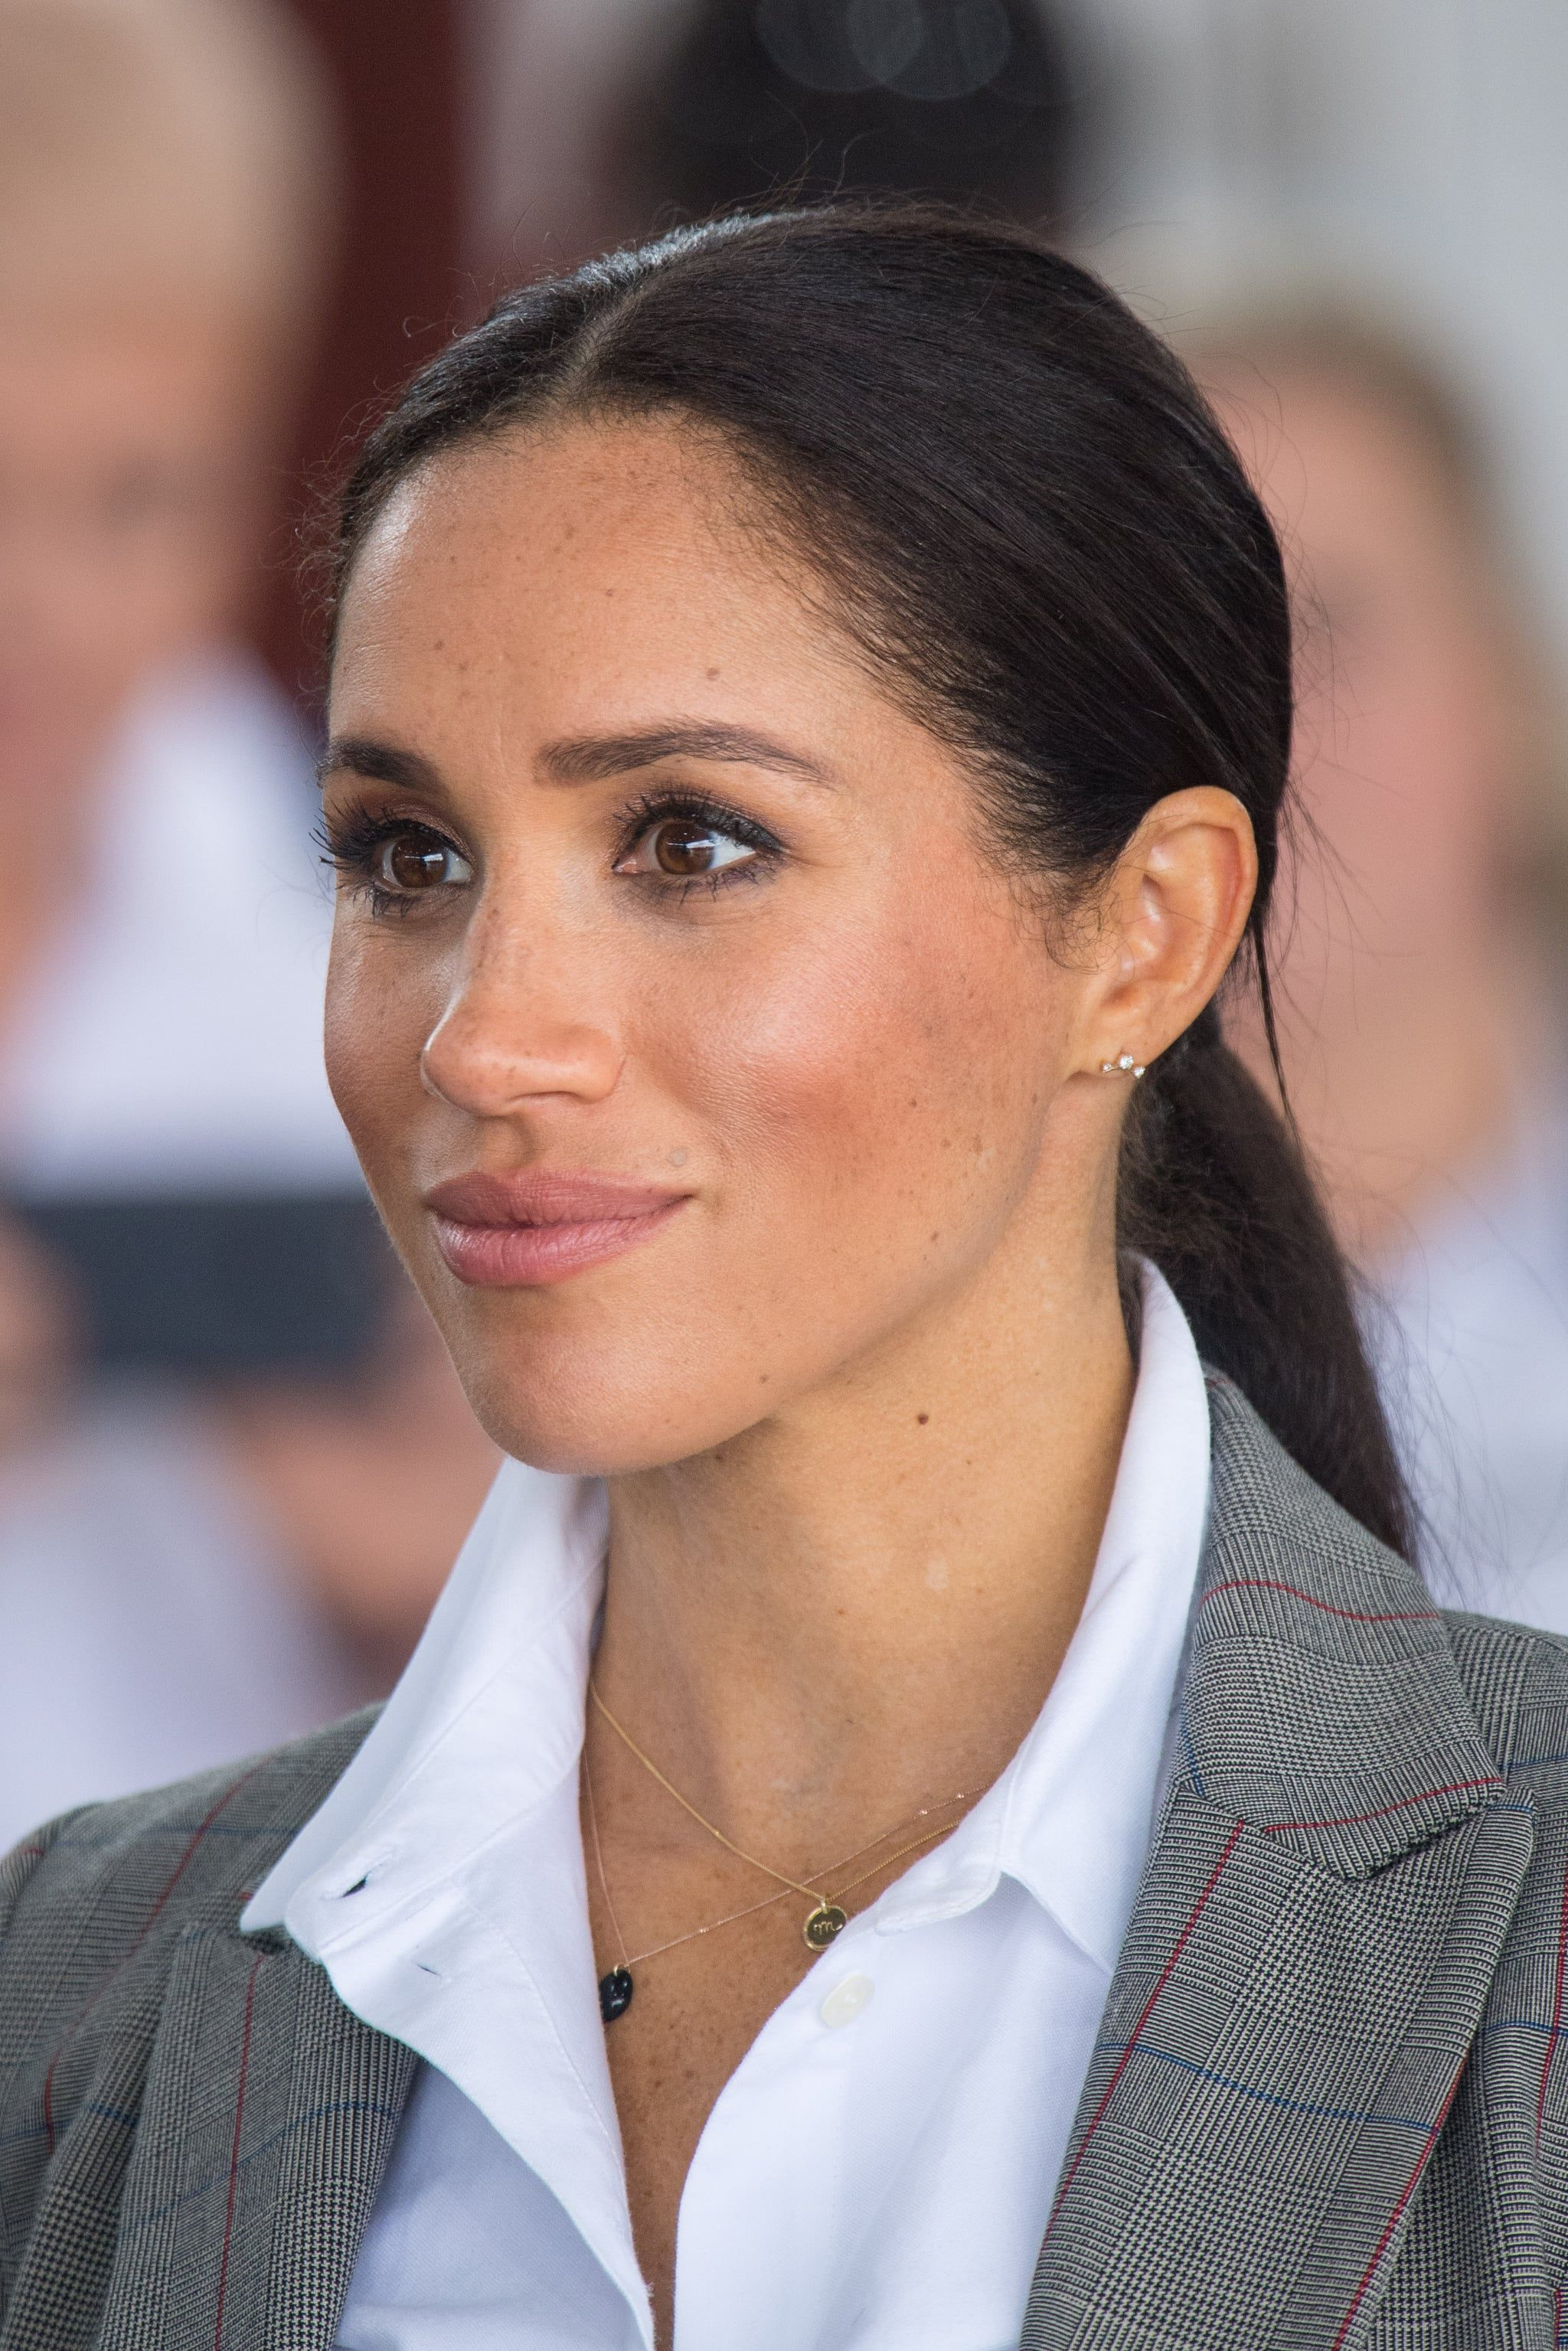 The Brilliant Makeup Trick Meghan Markle Always Does but No One